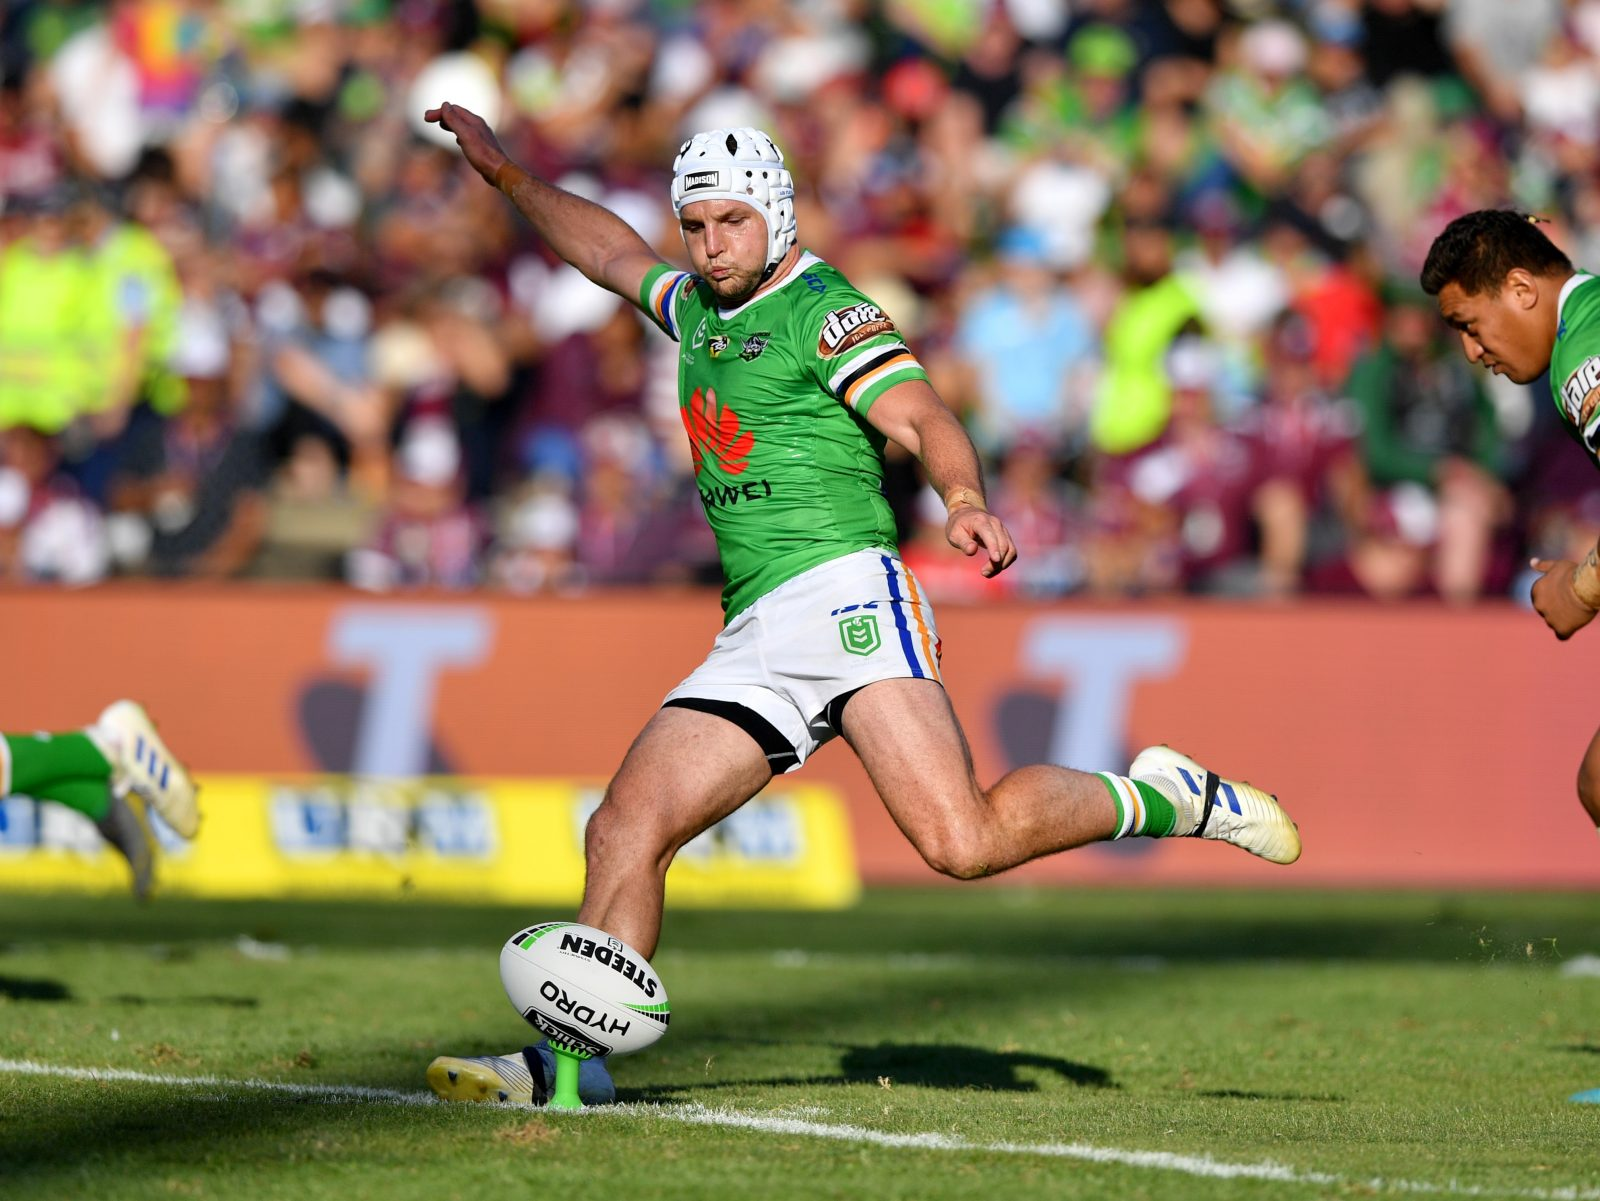 Jarrod Croker kicks off for the Canberra Raiders